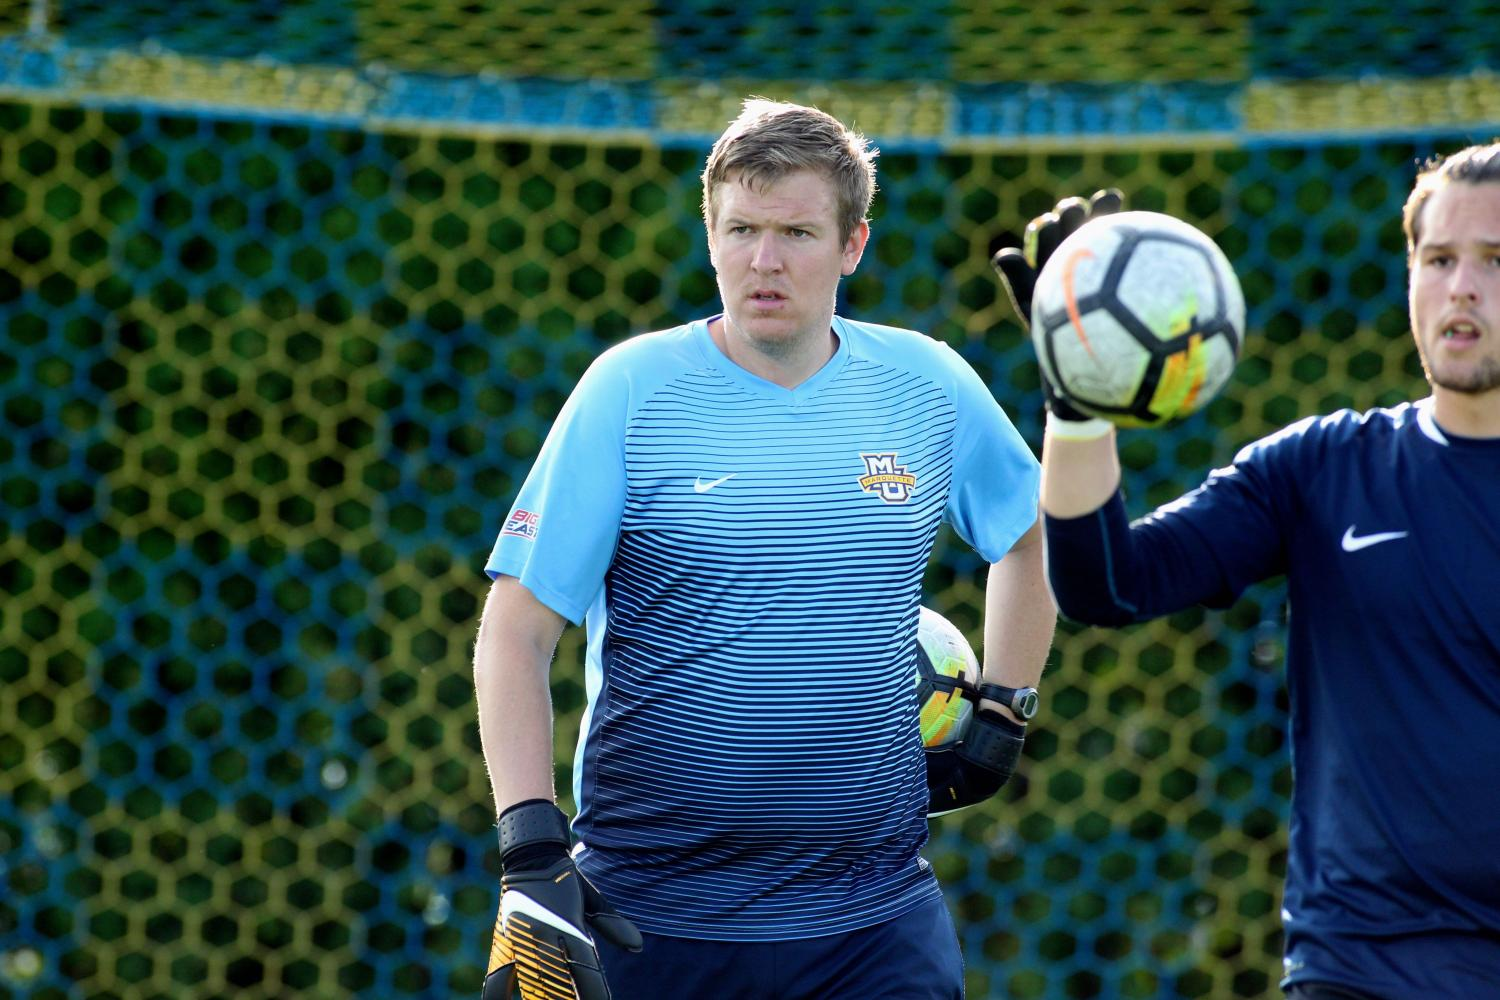 Goalkeepers coach Graham Shaw came over from Liverpool, England to coach Marquette's goalies.